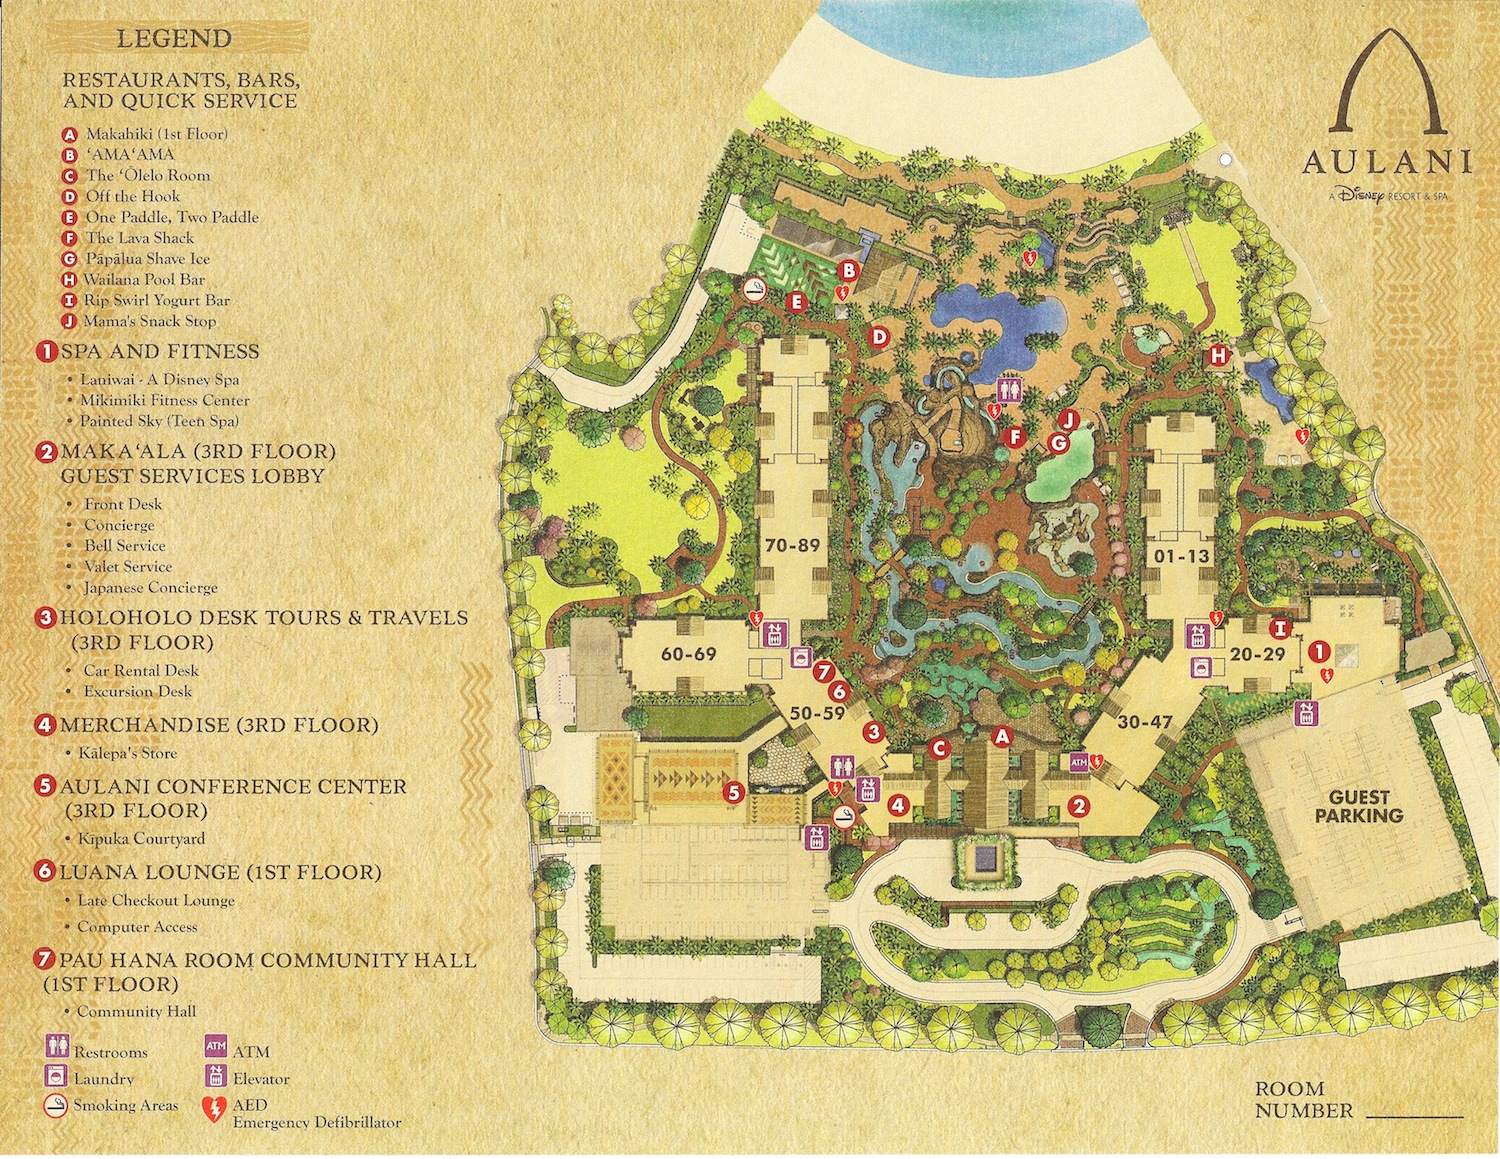 Aulani Map - Sept 2012